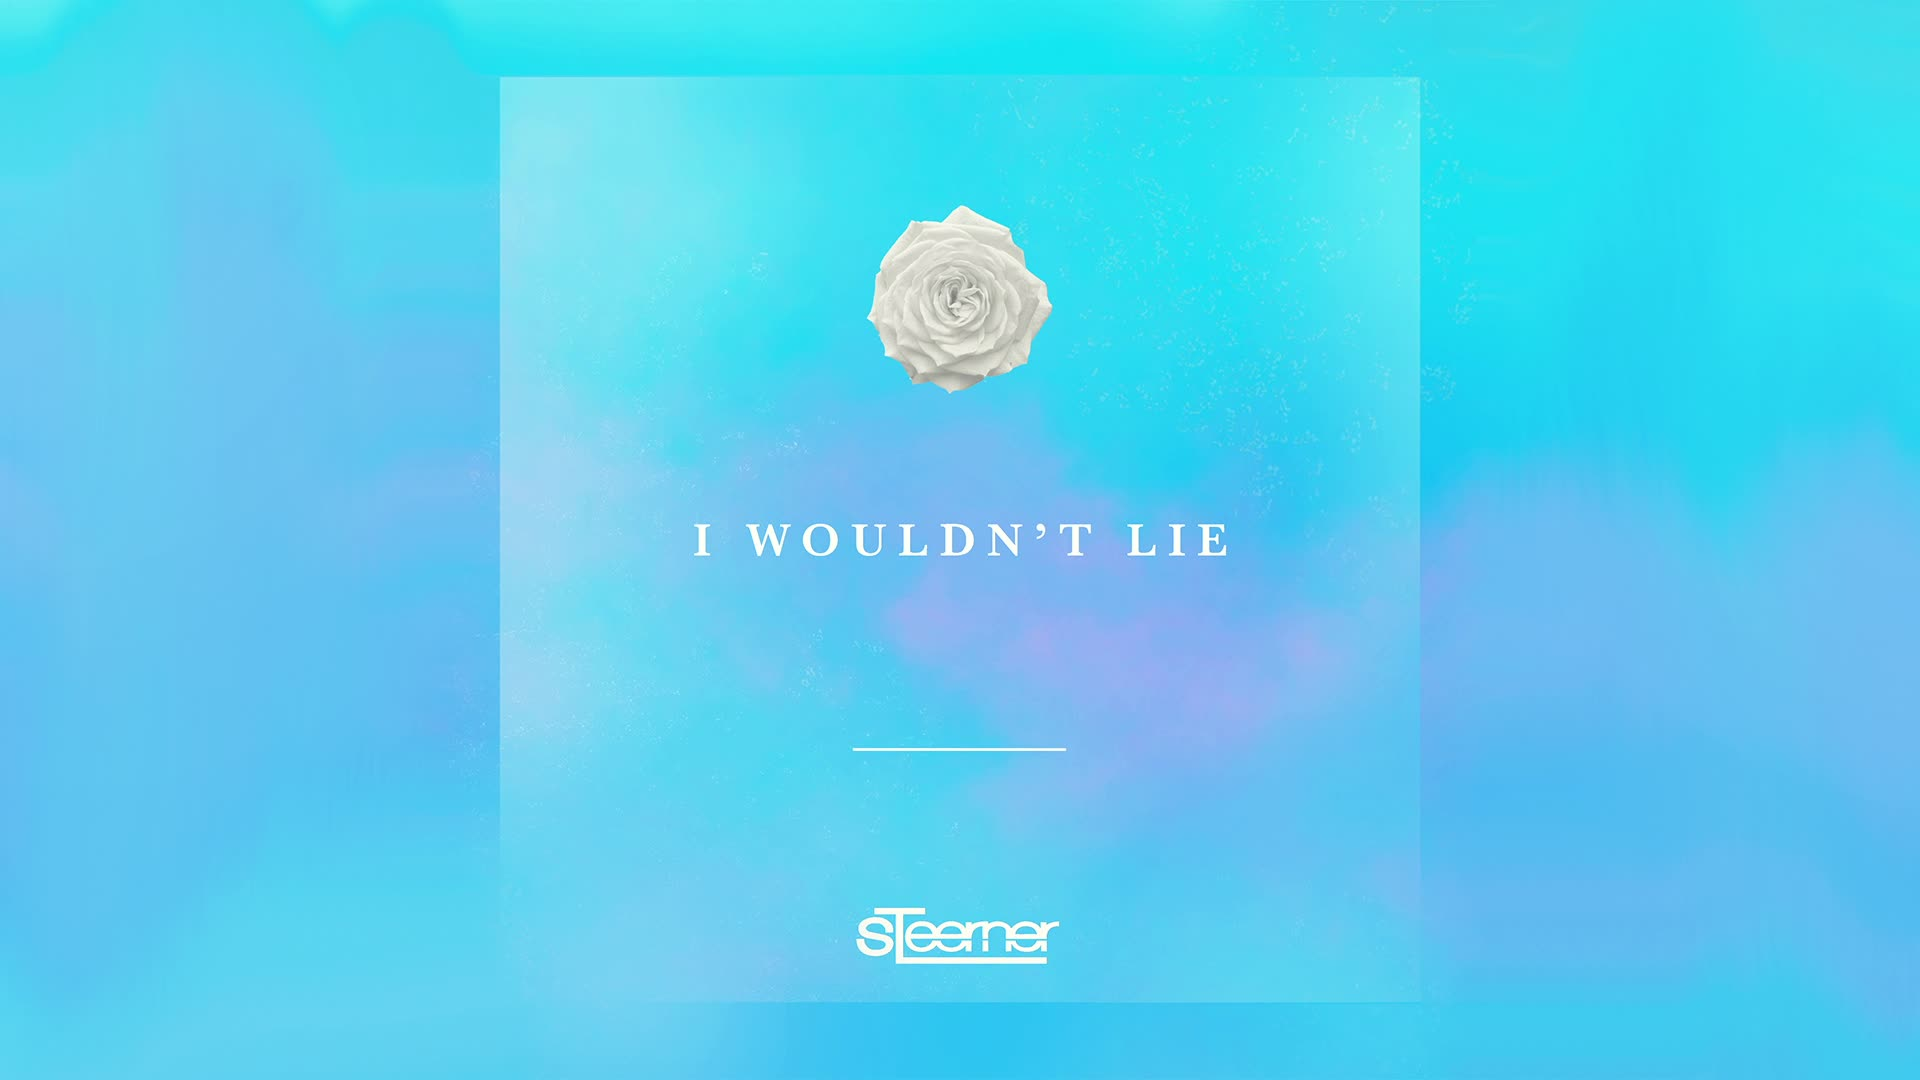 Steerner - I Wouldn't Lie (Оfficial video)